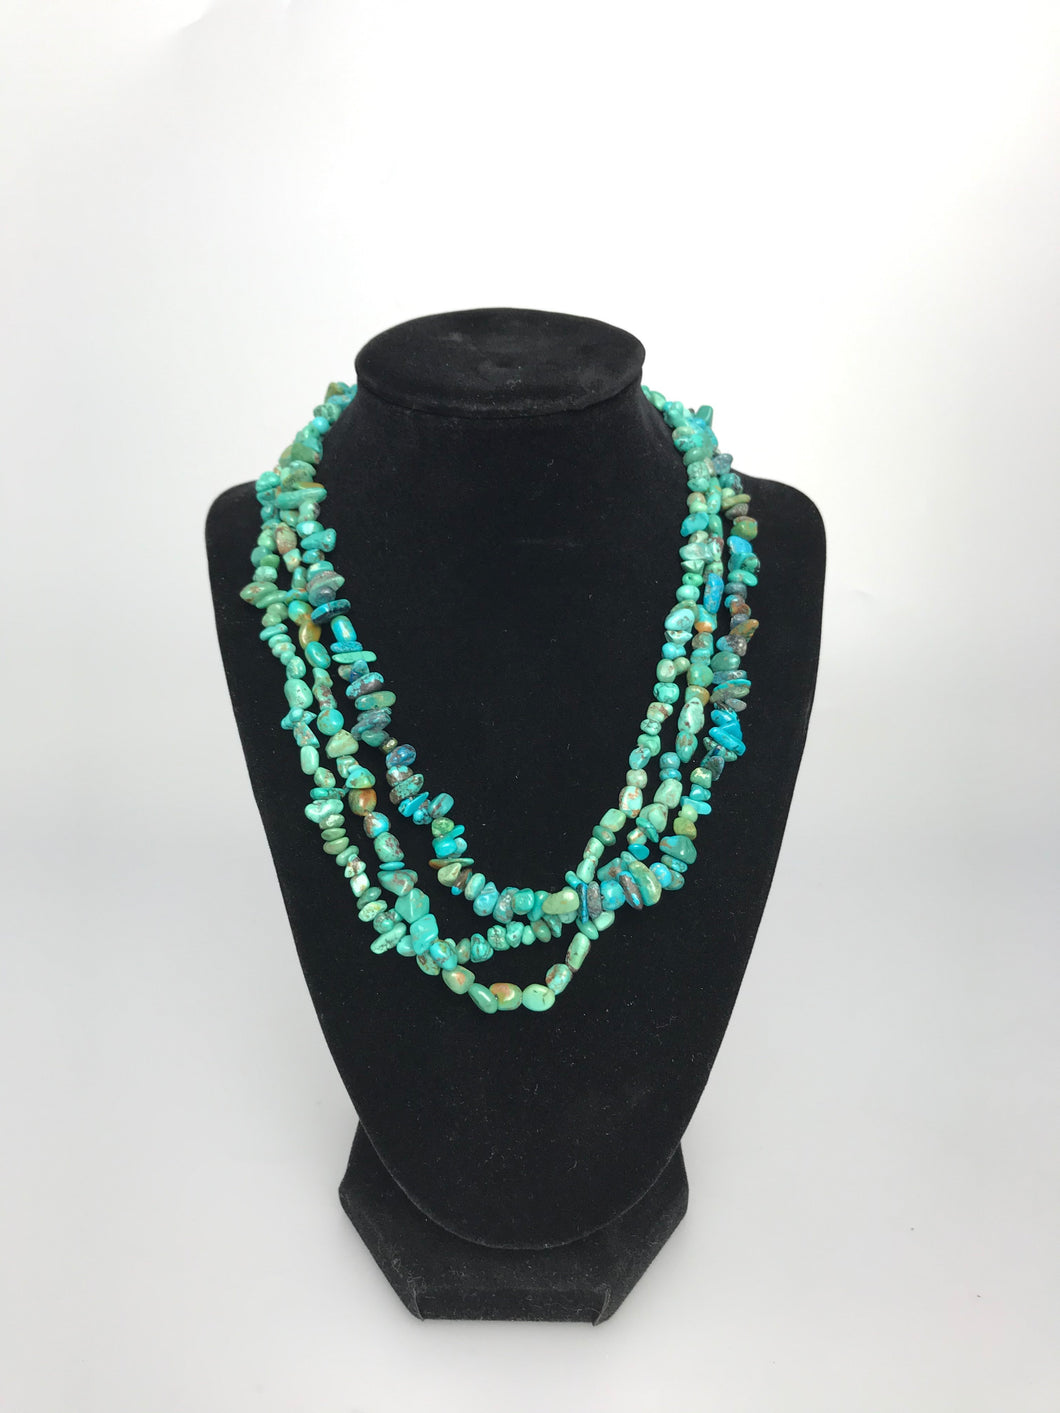 3 Strand Turquoise Beaded necklace